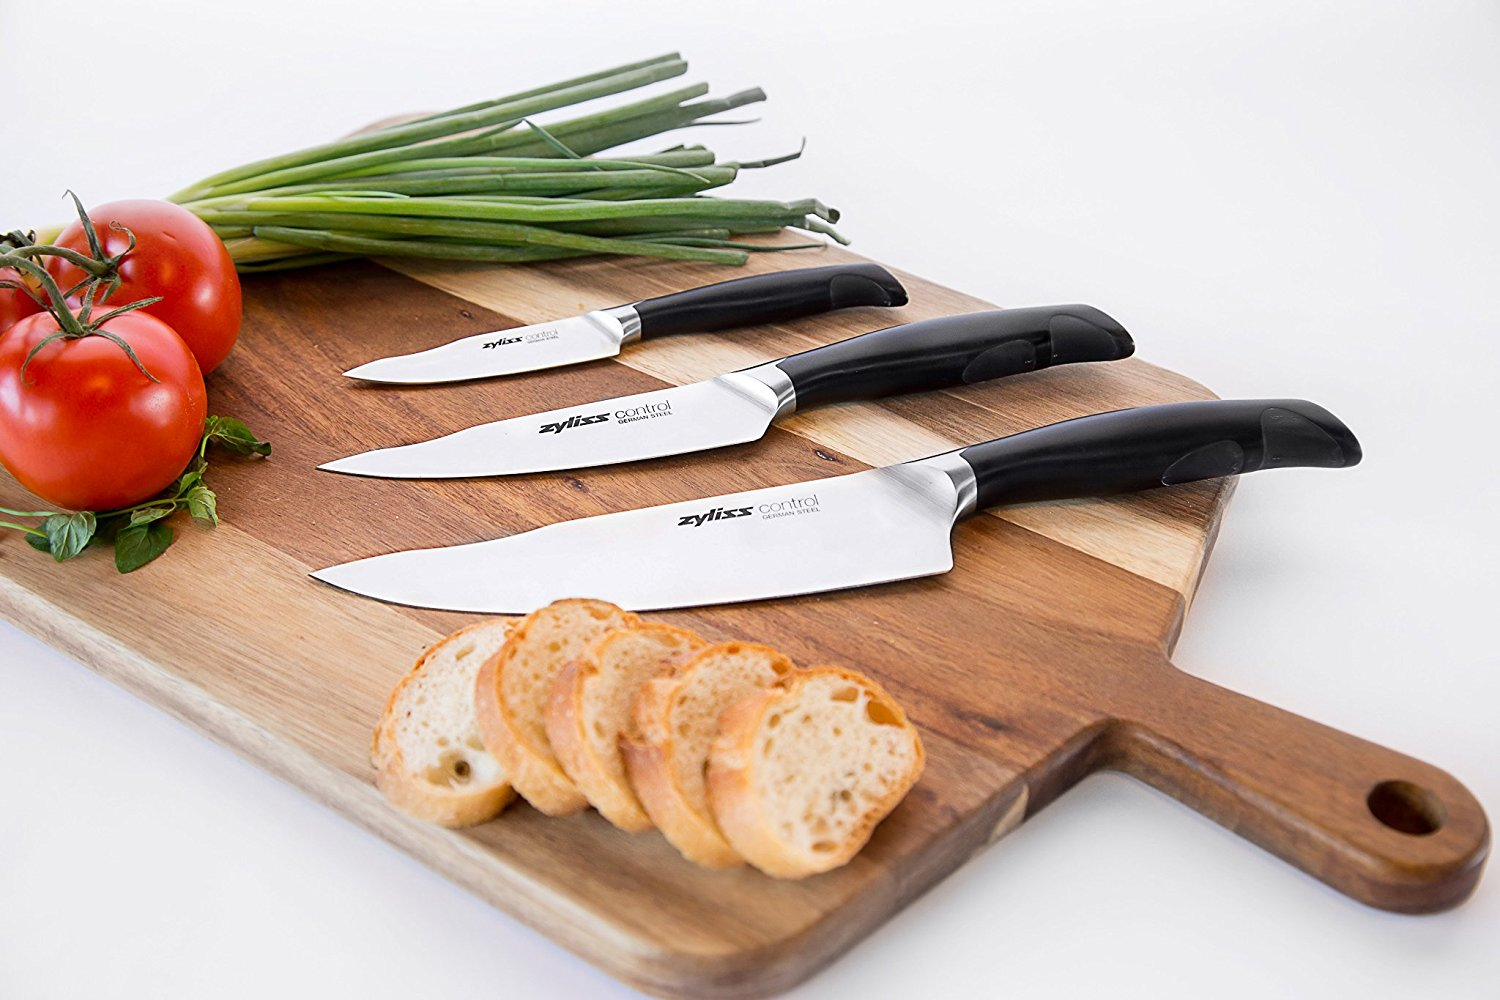 review zyliss control kitchen knife set includes paring utility chefs knife professional. Black Bedroom Furniture Sets. Home Design Ideas